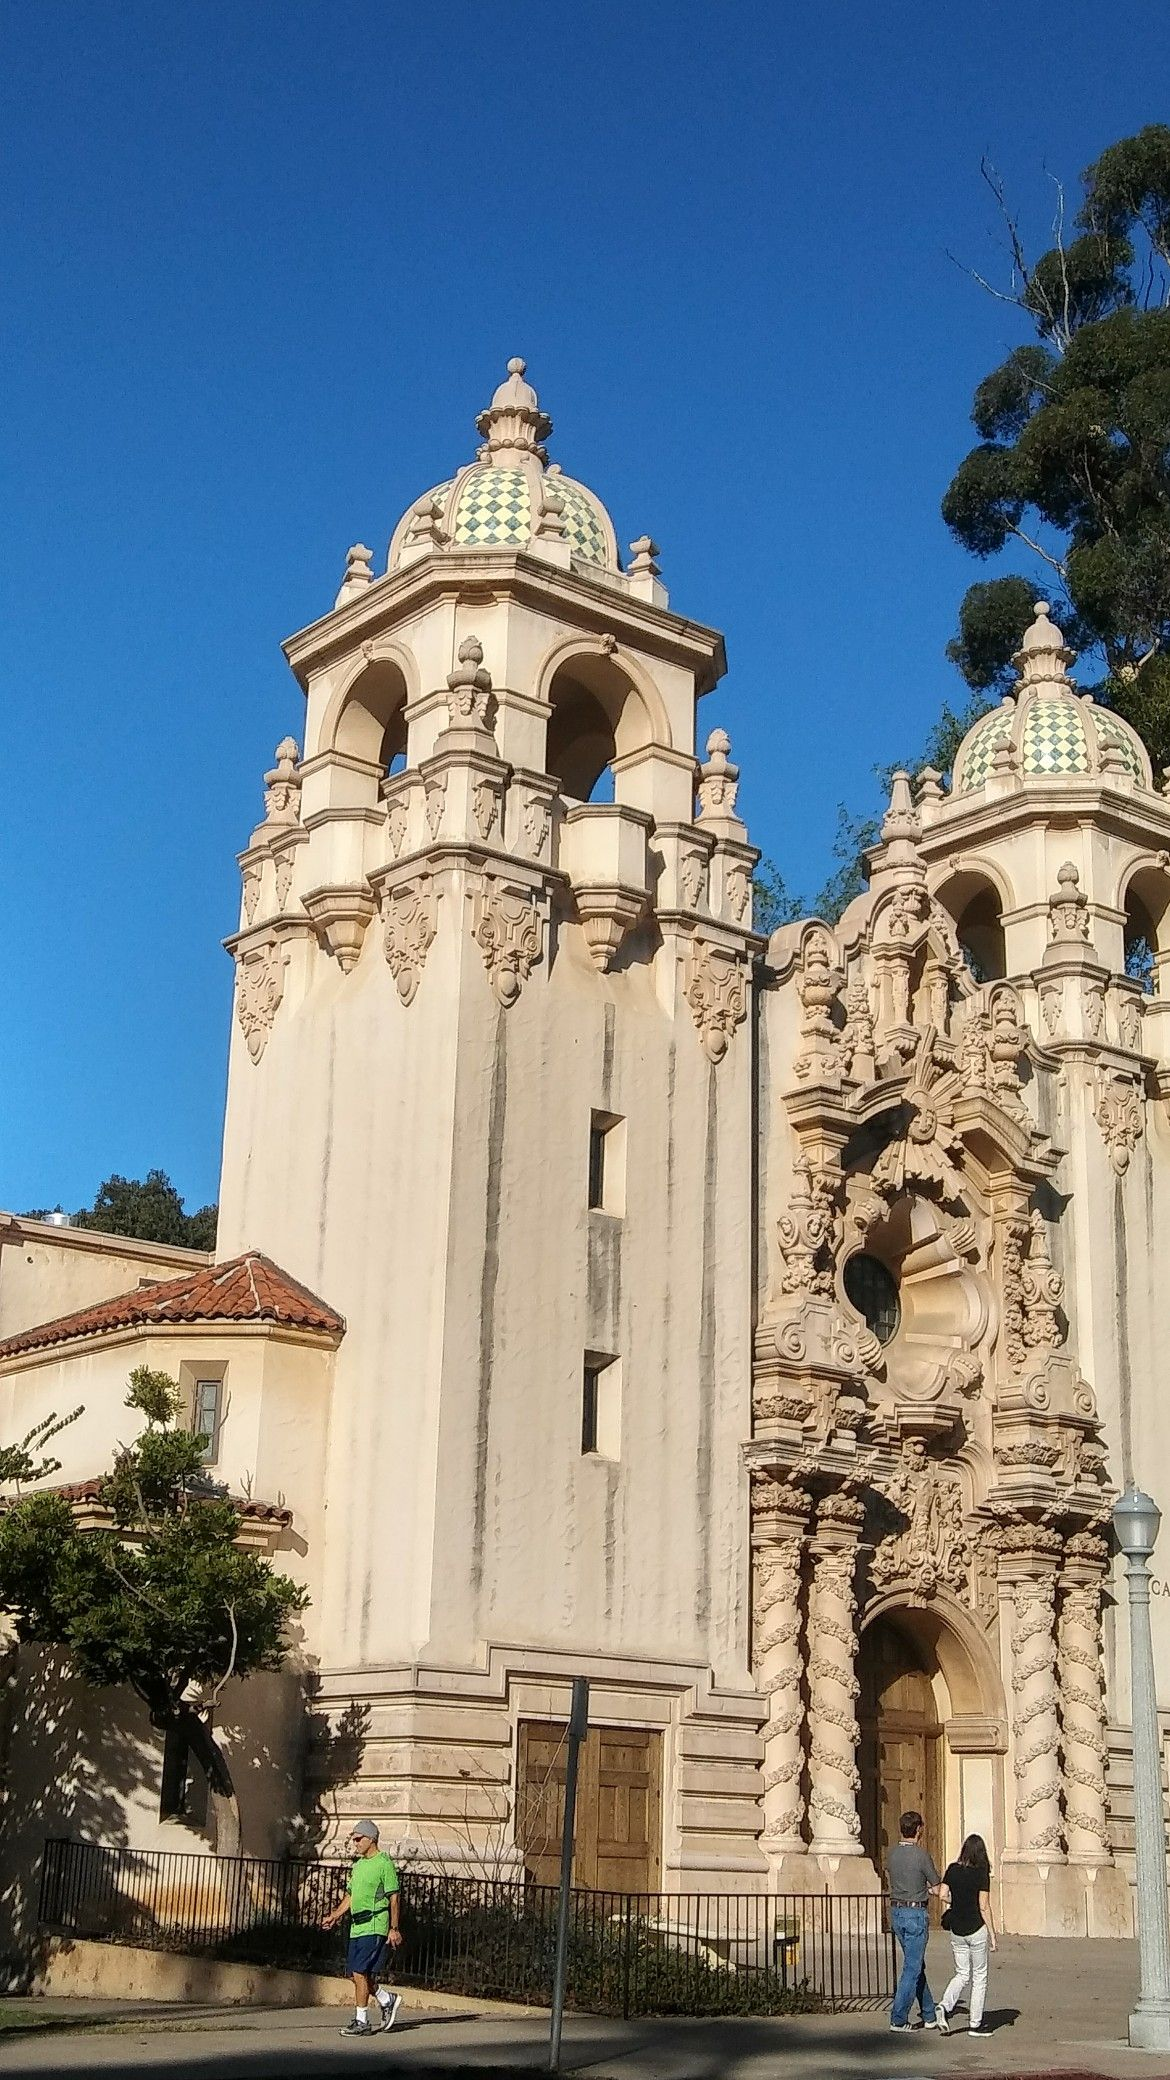 Pin by Nicolee on Balboa Park Architecture Reference Pinterest